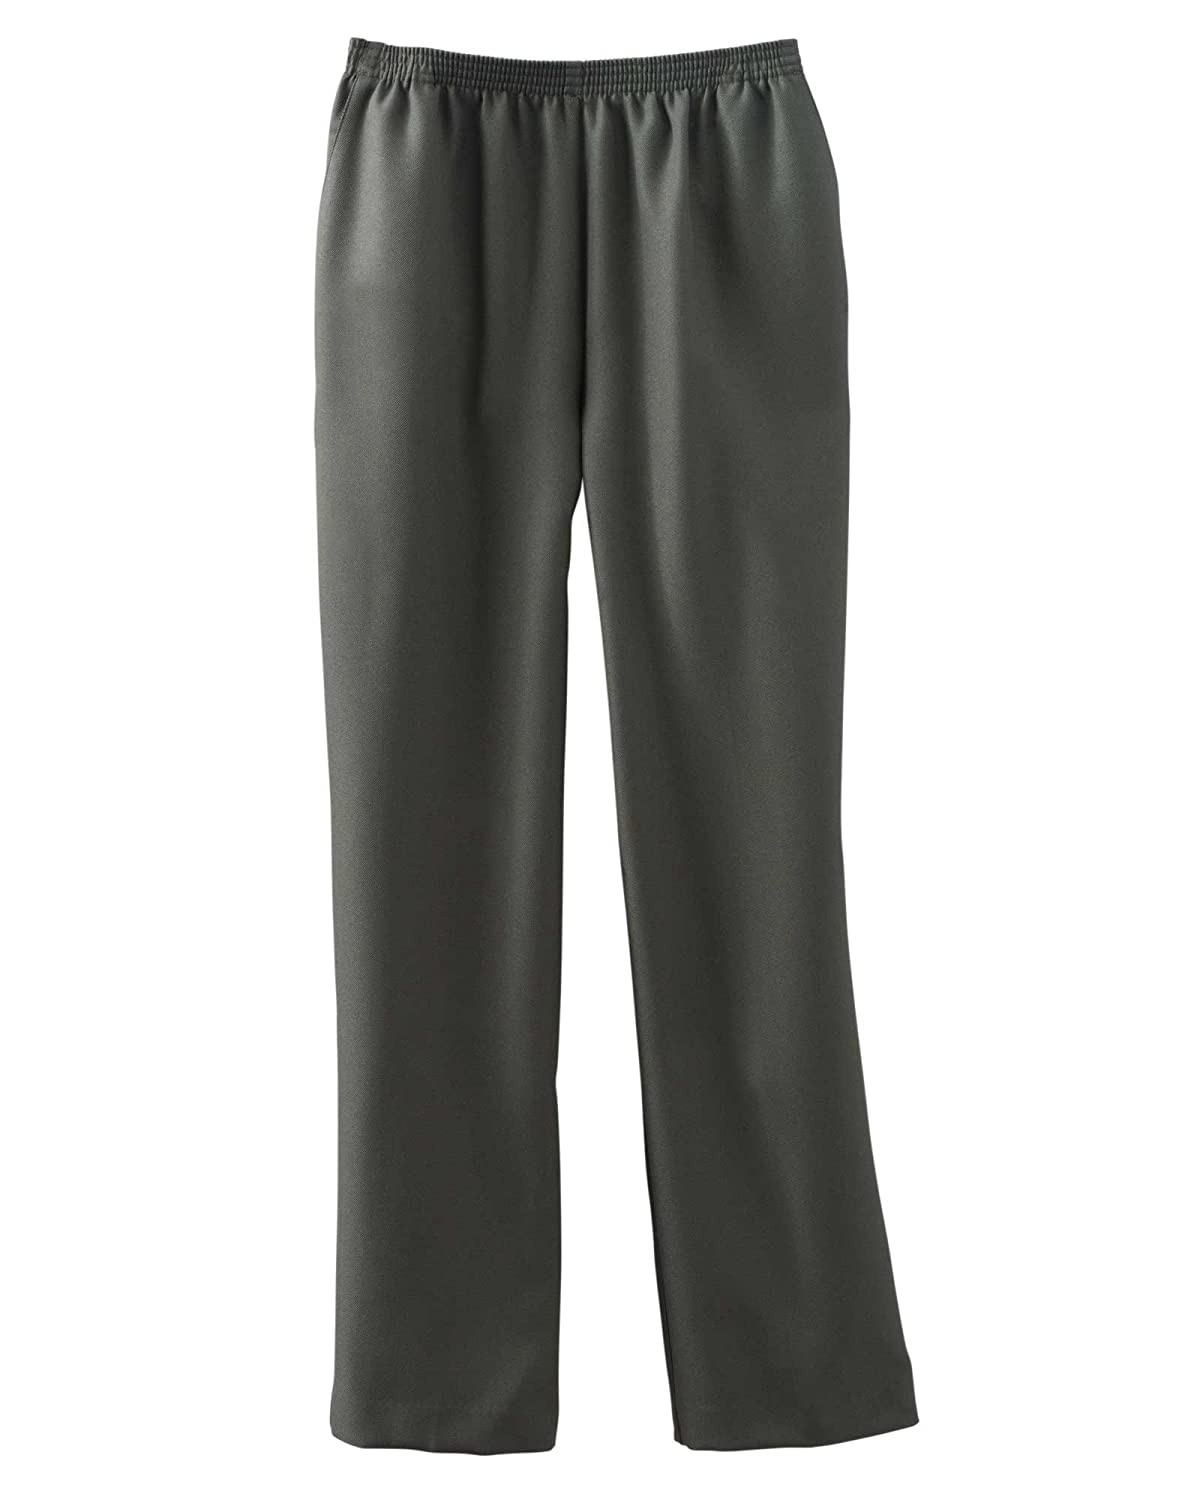 Alfred Dunner Women's Petite Poly Proportioned Medium Pant 9703